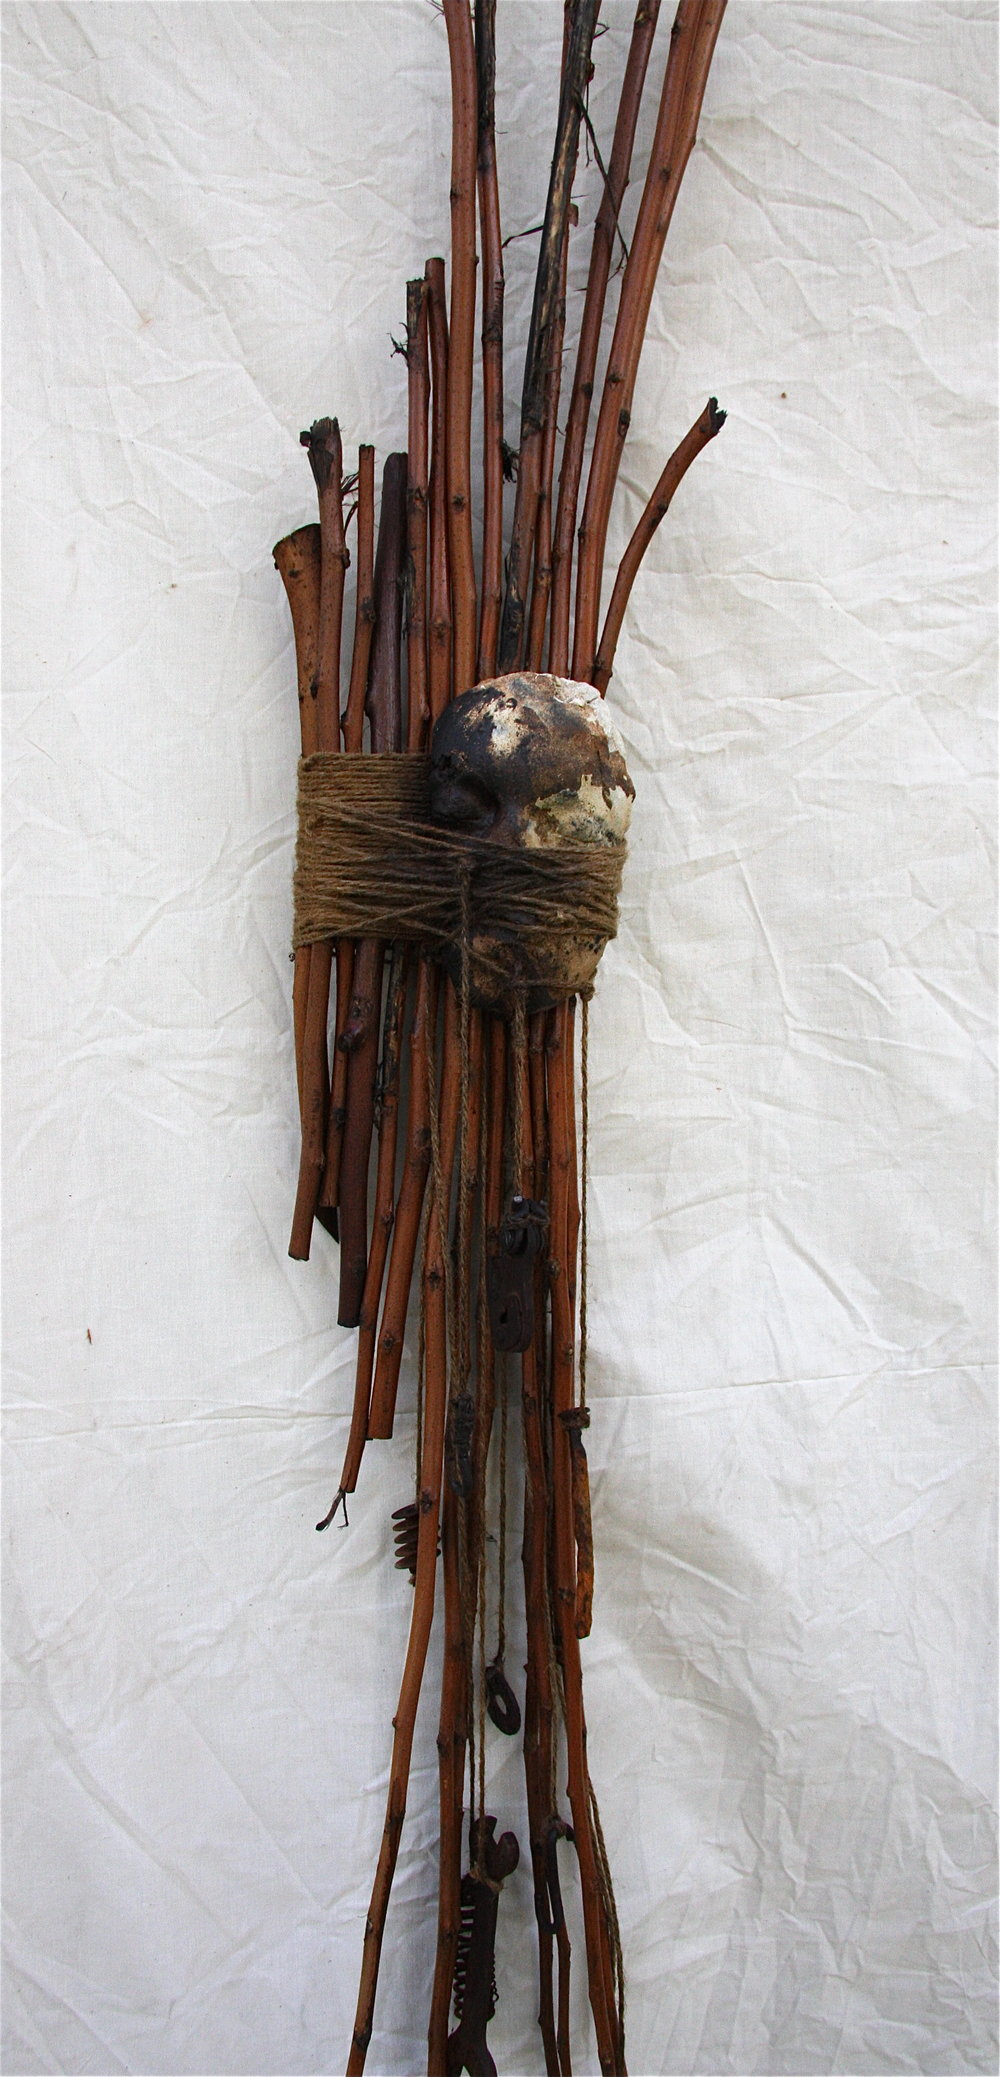 Fragments hang like thoughts from a pre-dawn hour   2010  Ceramic, branches, twine and found objects  75 x 14 x 4